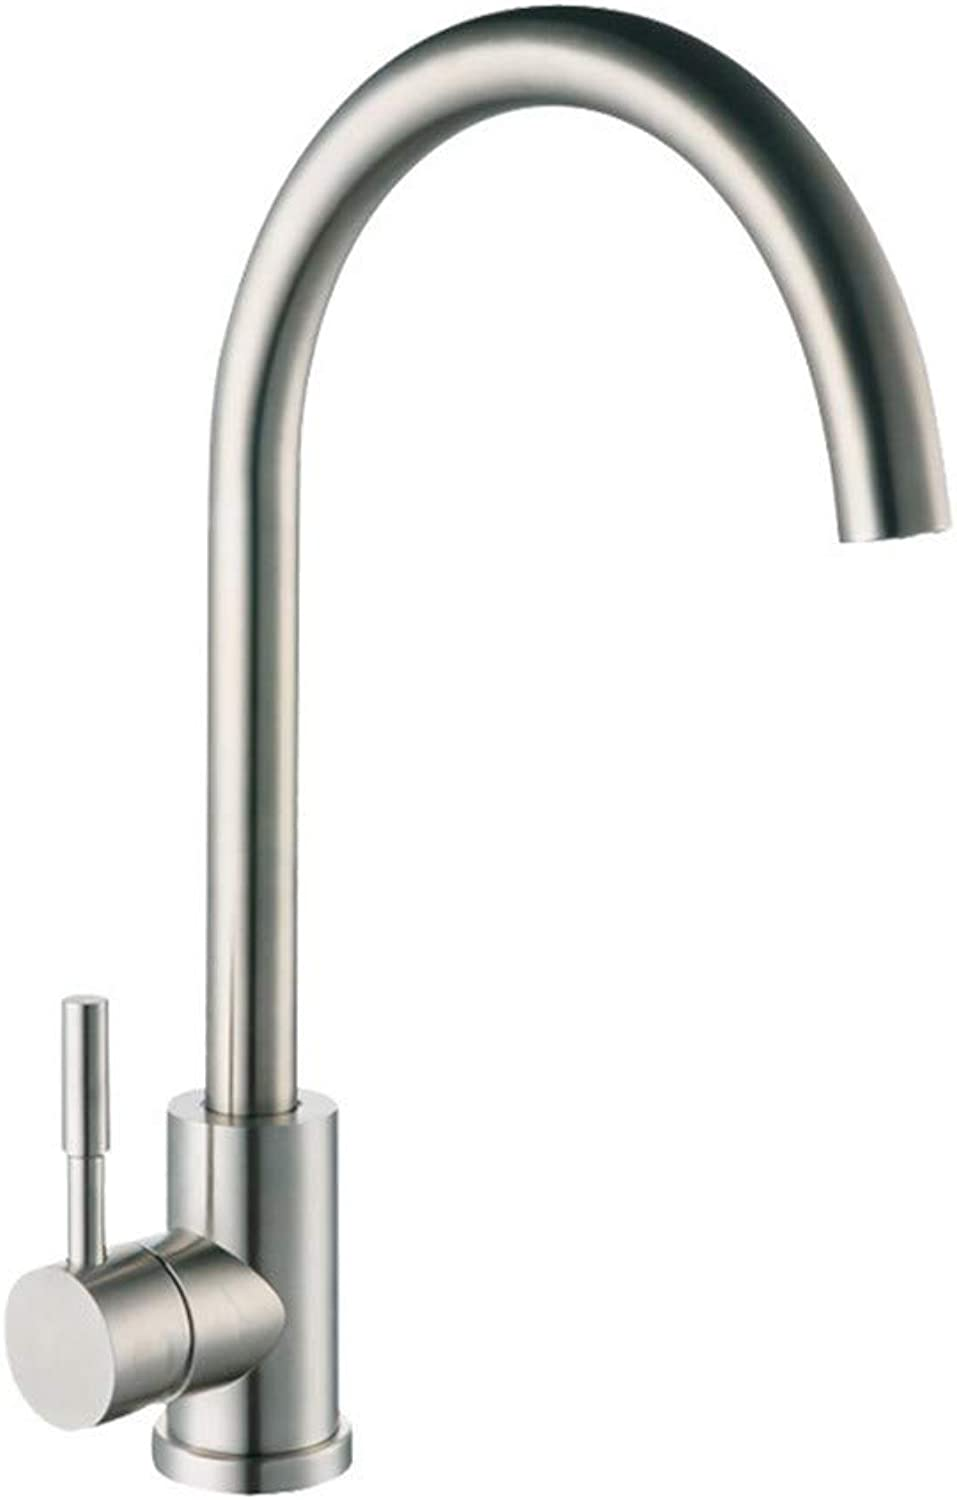 G-FT Hot and Cold Water tap Brass Faucet Stainless Steel Faucet Stainless Steel Dish hot and Cold Water Faucet 304 Lead-Free Water Mixing Sink Kitchen Faucet